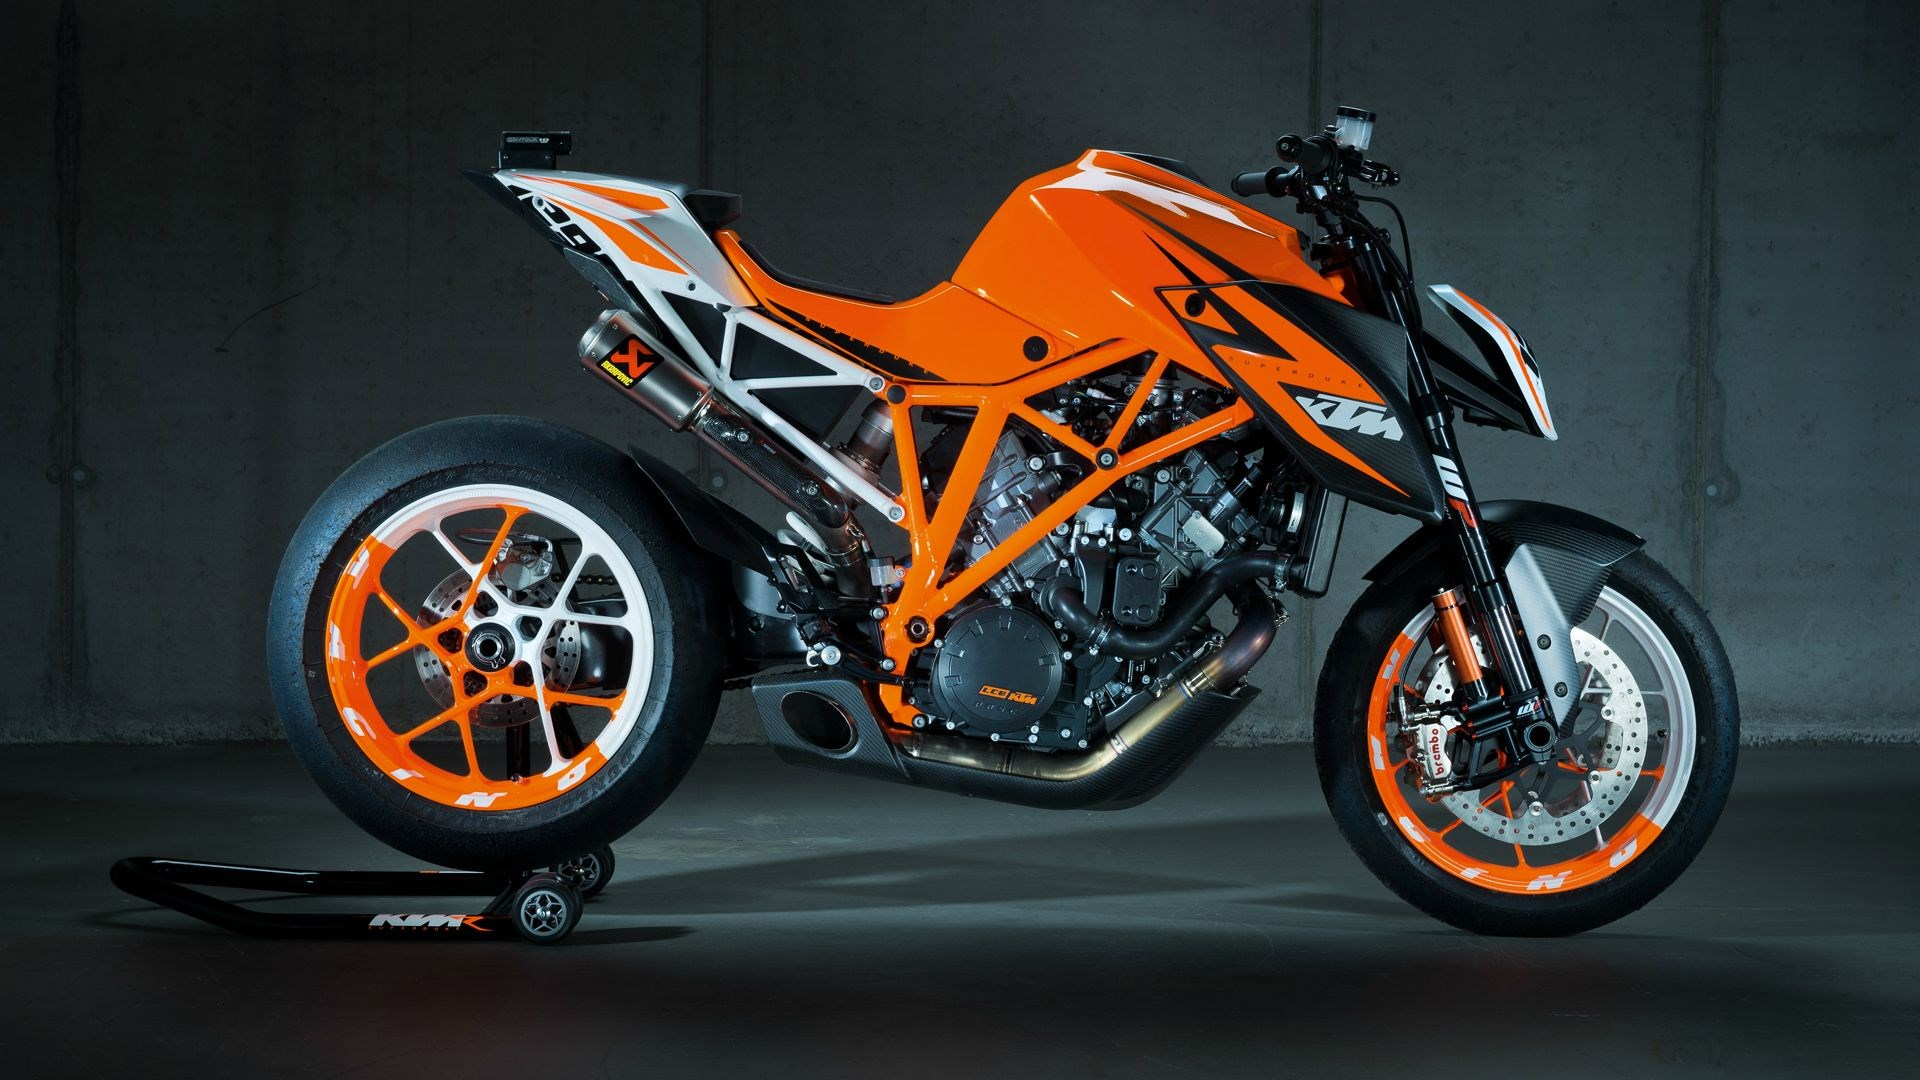 1920x1080px-ktm-hd-by-Weather-Robin-wallpaper-wp360941